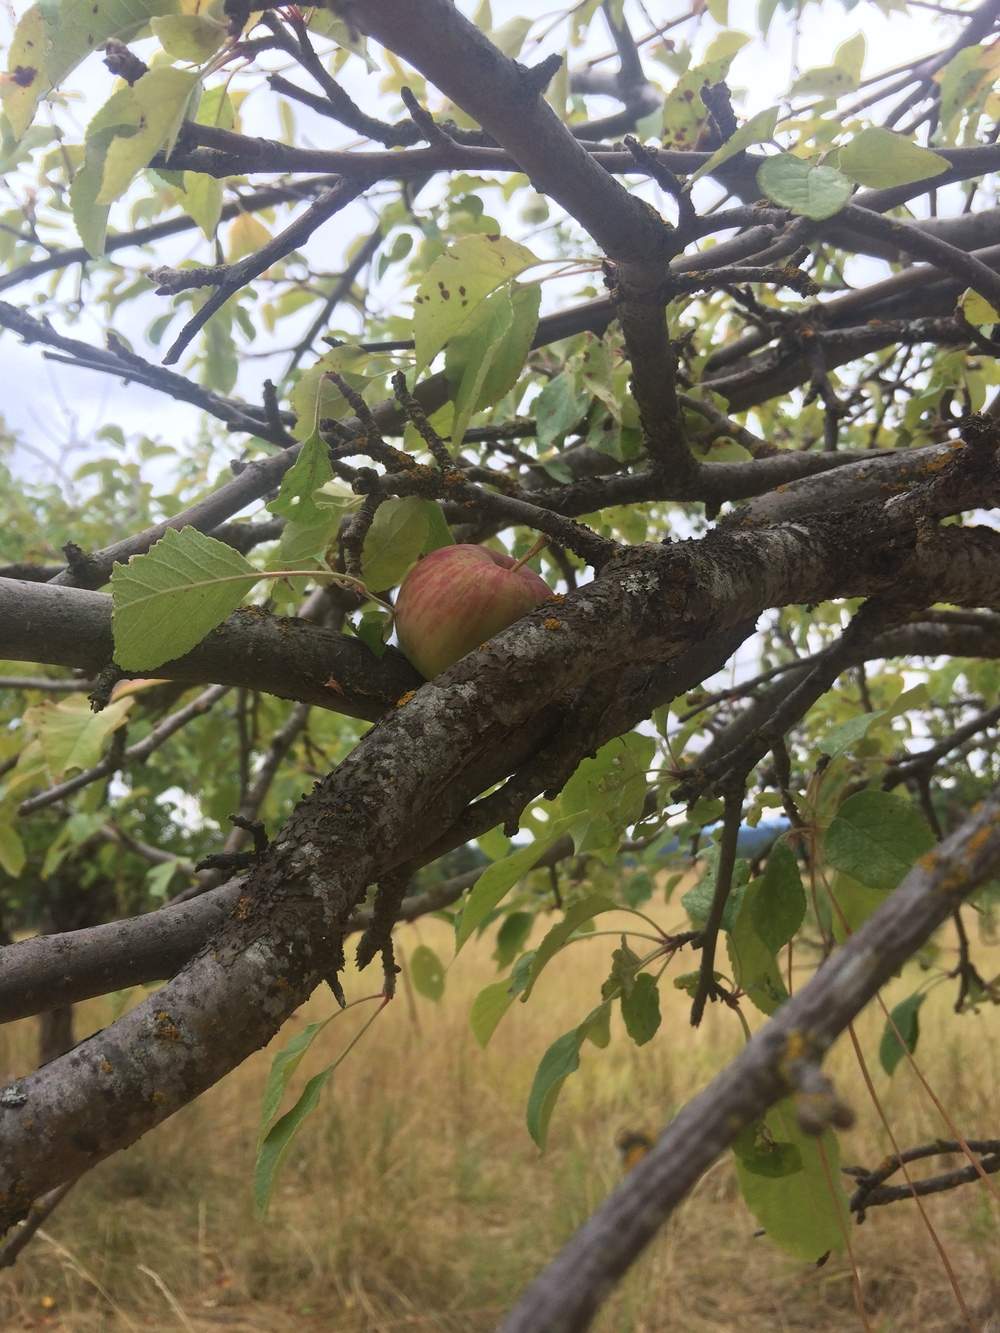 One apple, lovingly perched. September 2015.